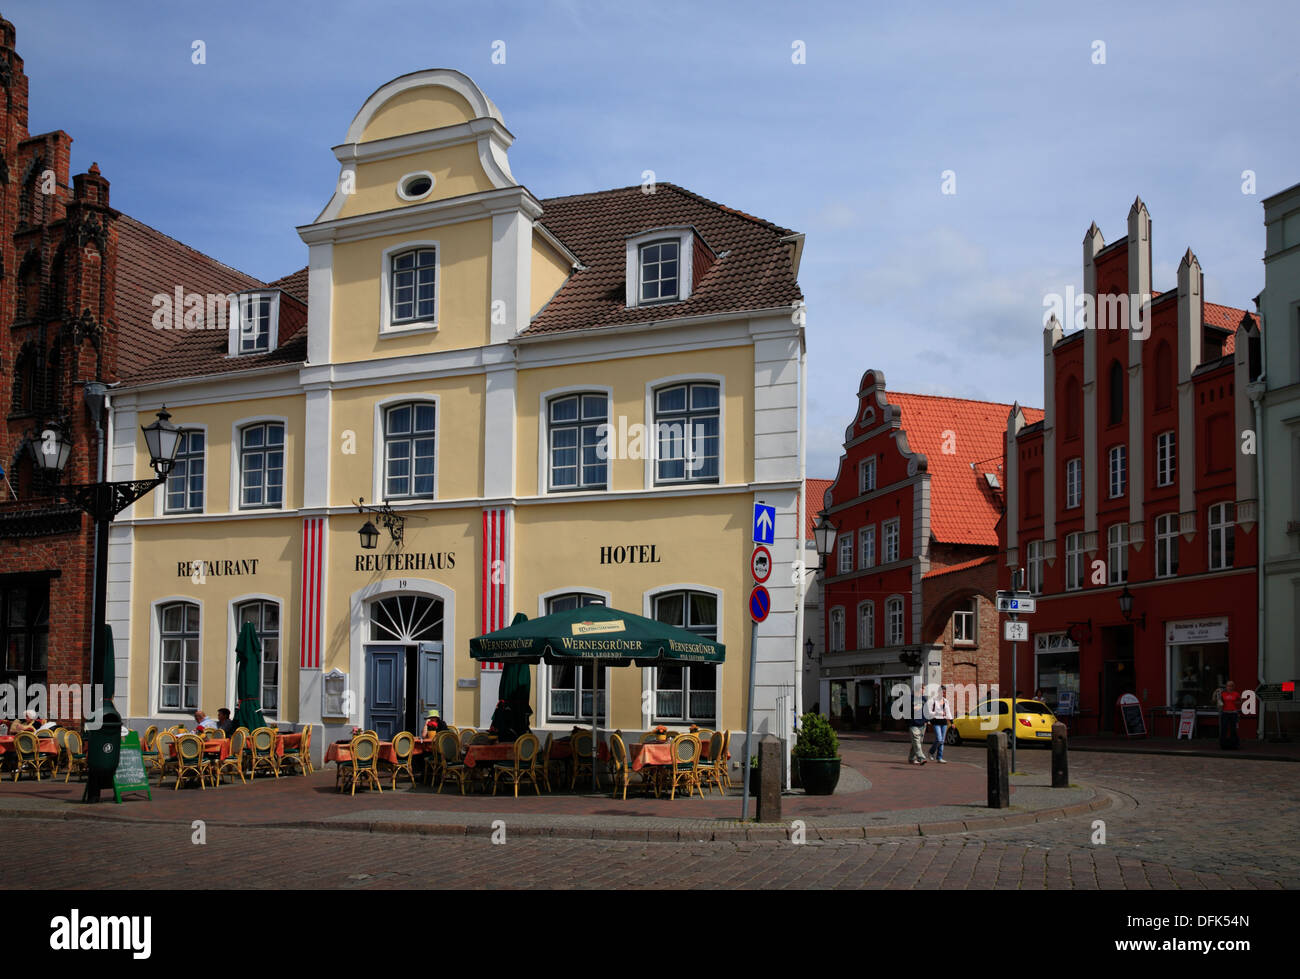 Hotel and rerstaurant at market square, hanseatic city of Wismar, Baltic Sea, Mecklenburg West Pomerania, Germany - Stock Image